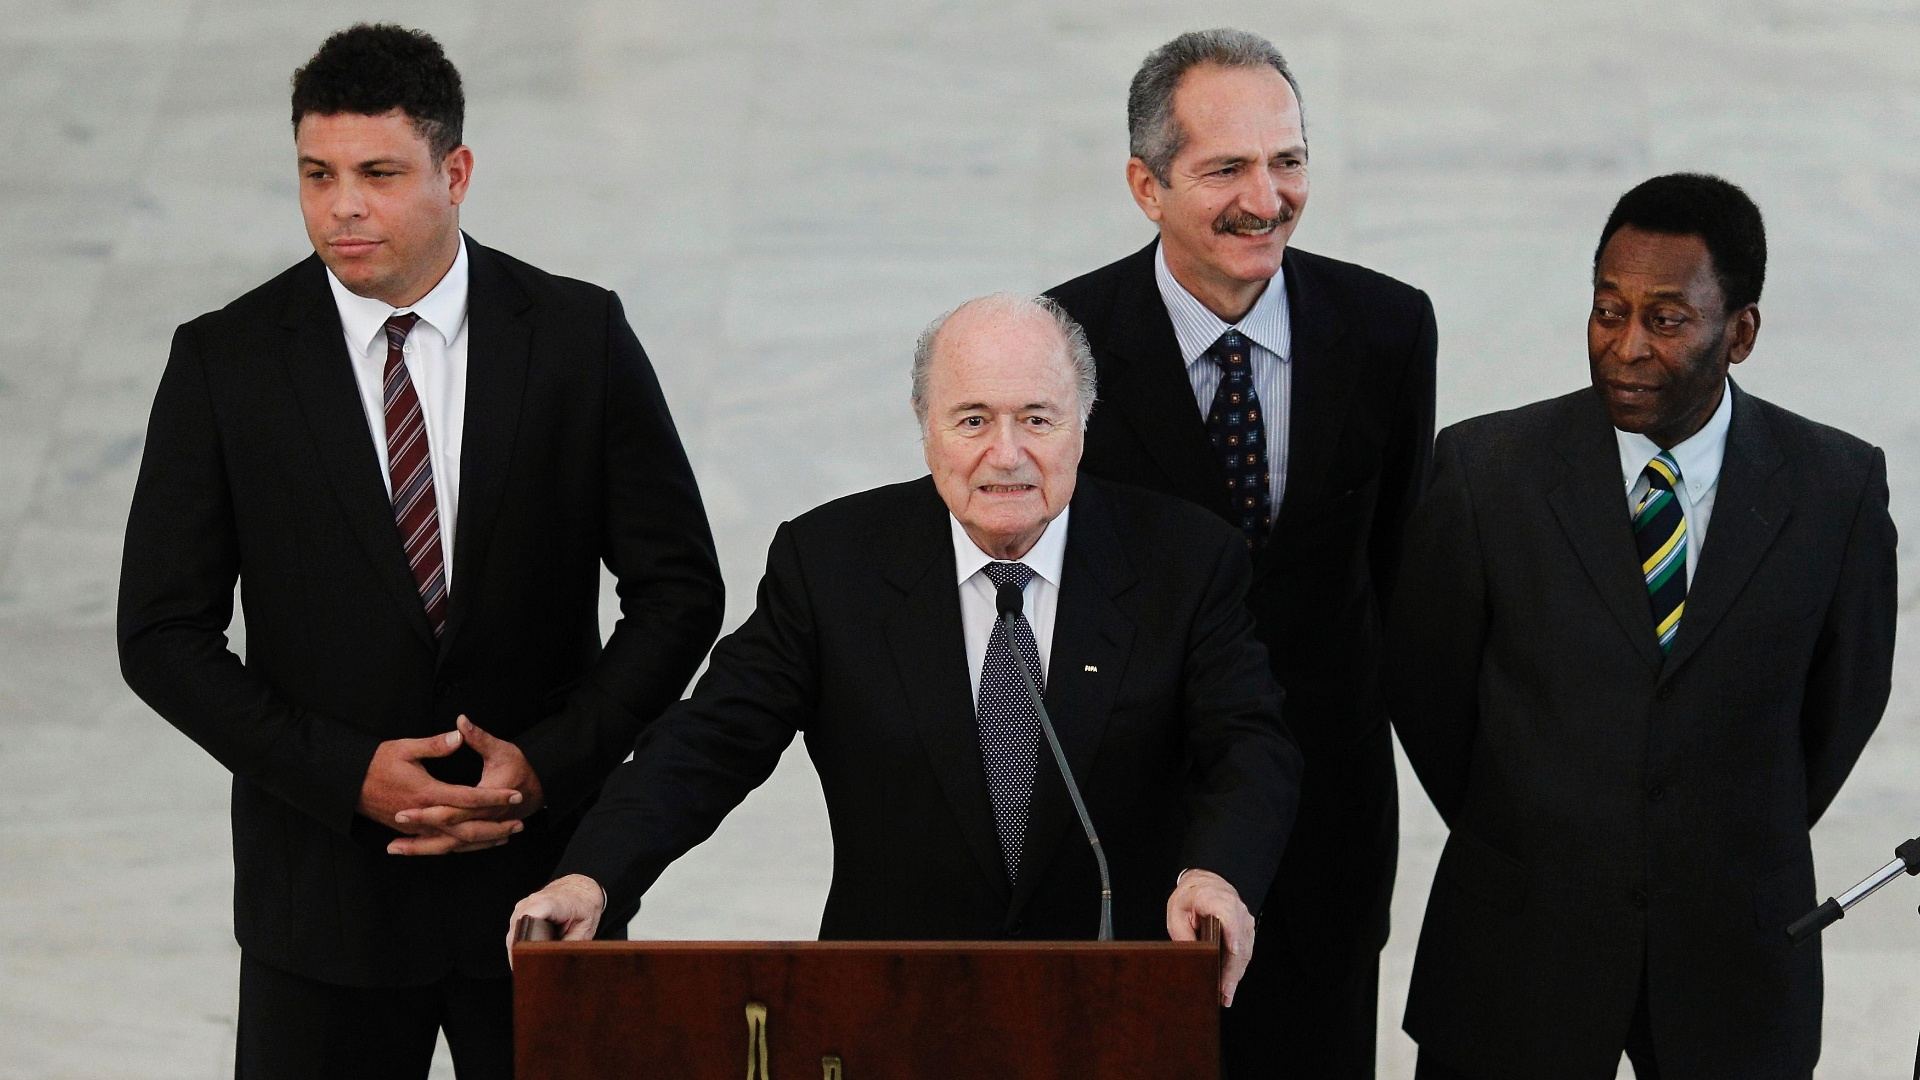 Ronaldo, Aldo Rebelo e Pel cercam o presidente da Fifa, Joseph Blatter, aps a reunio em Braslia